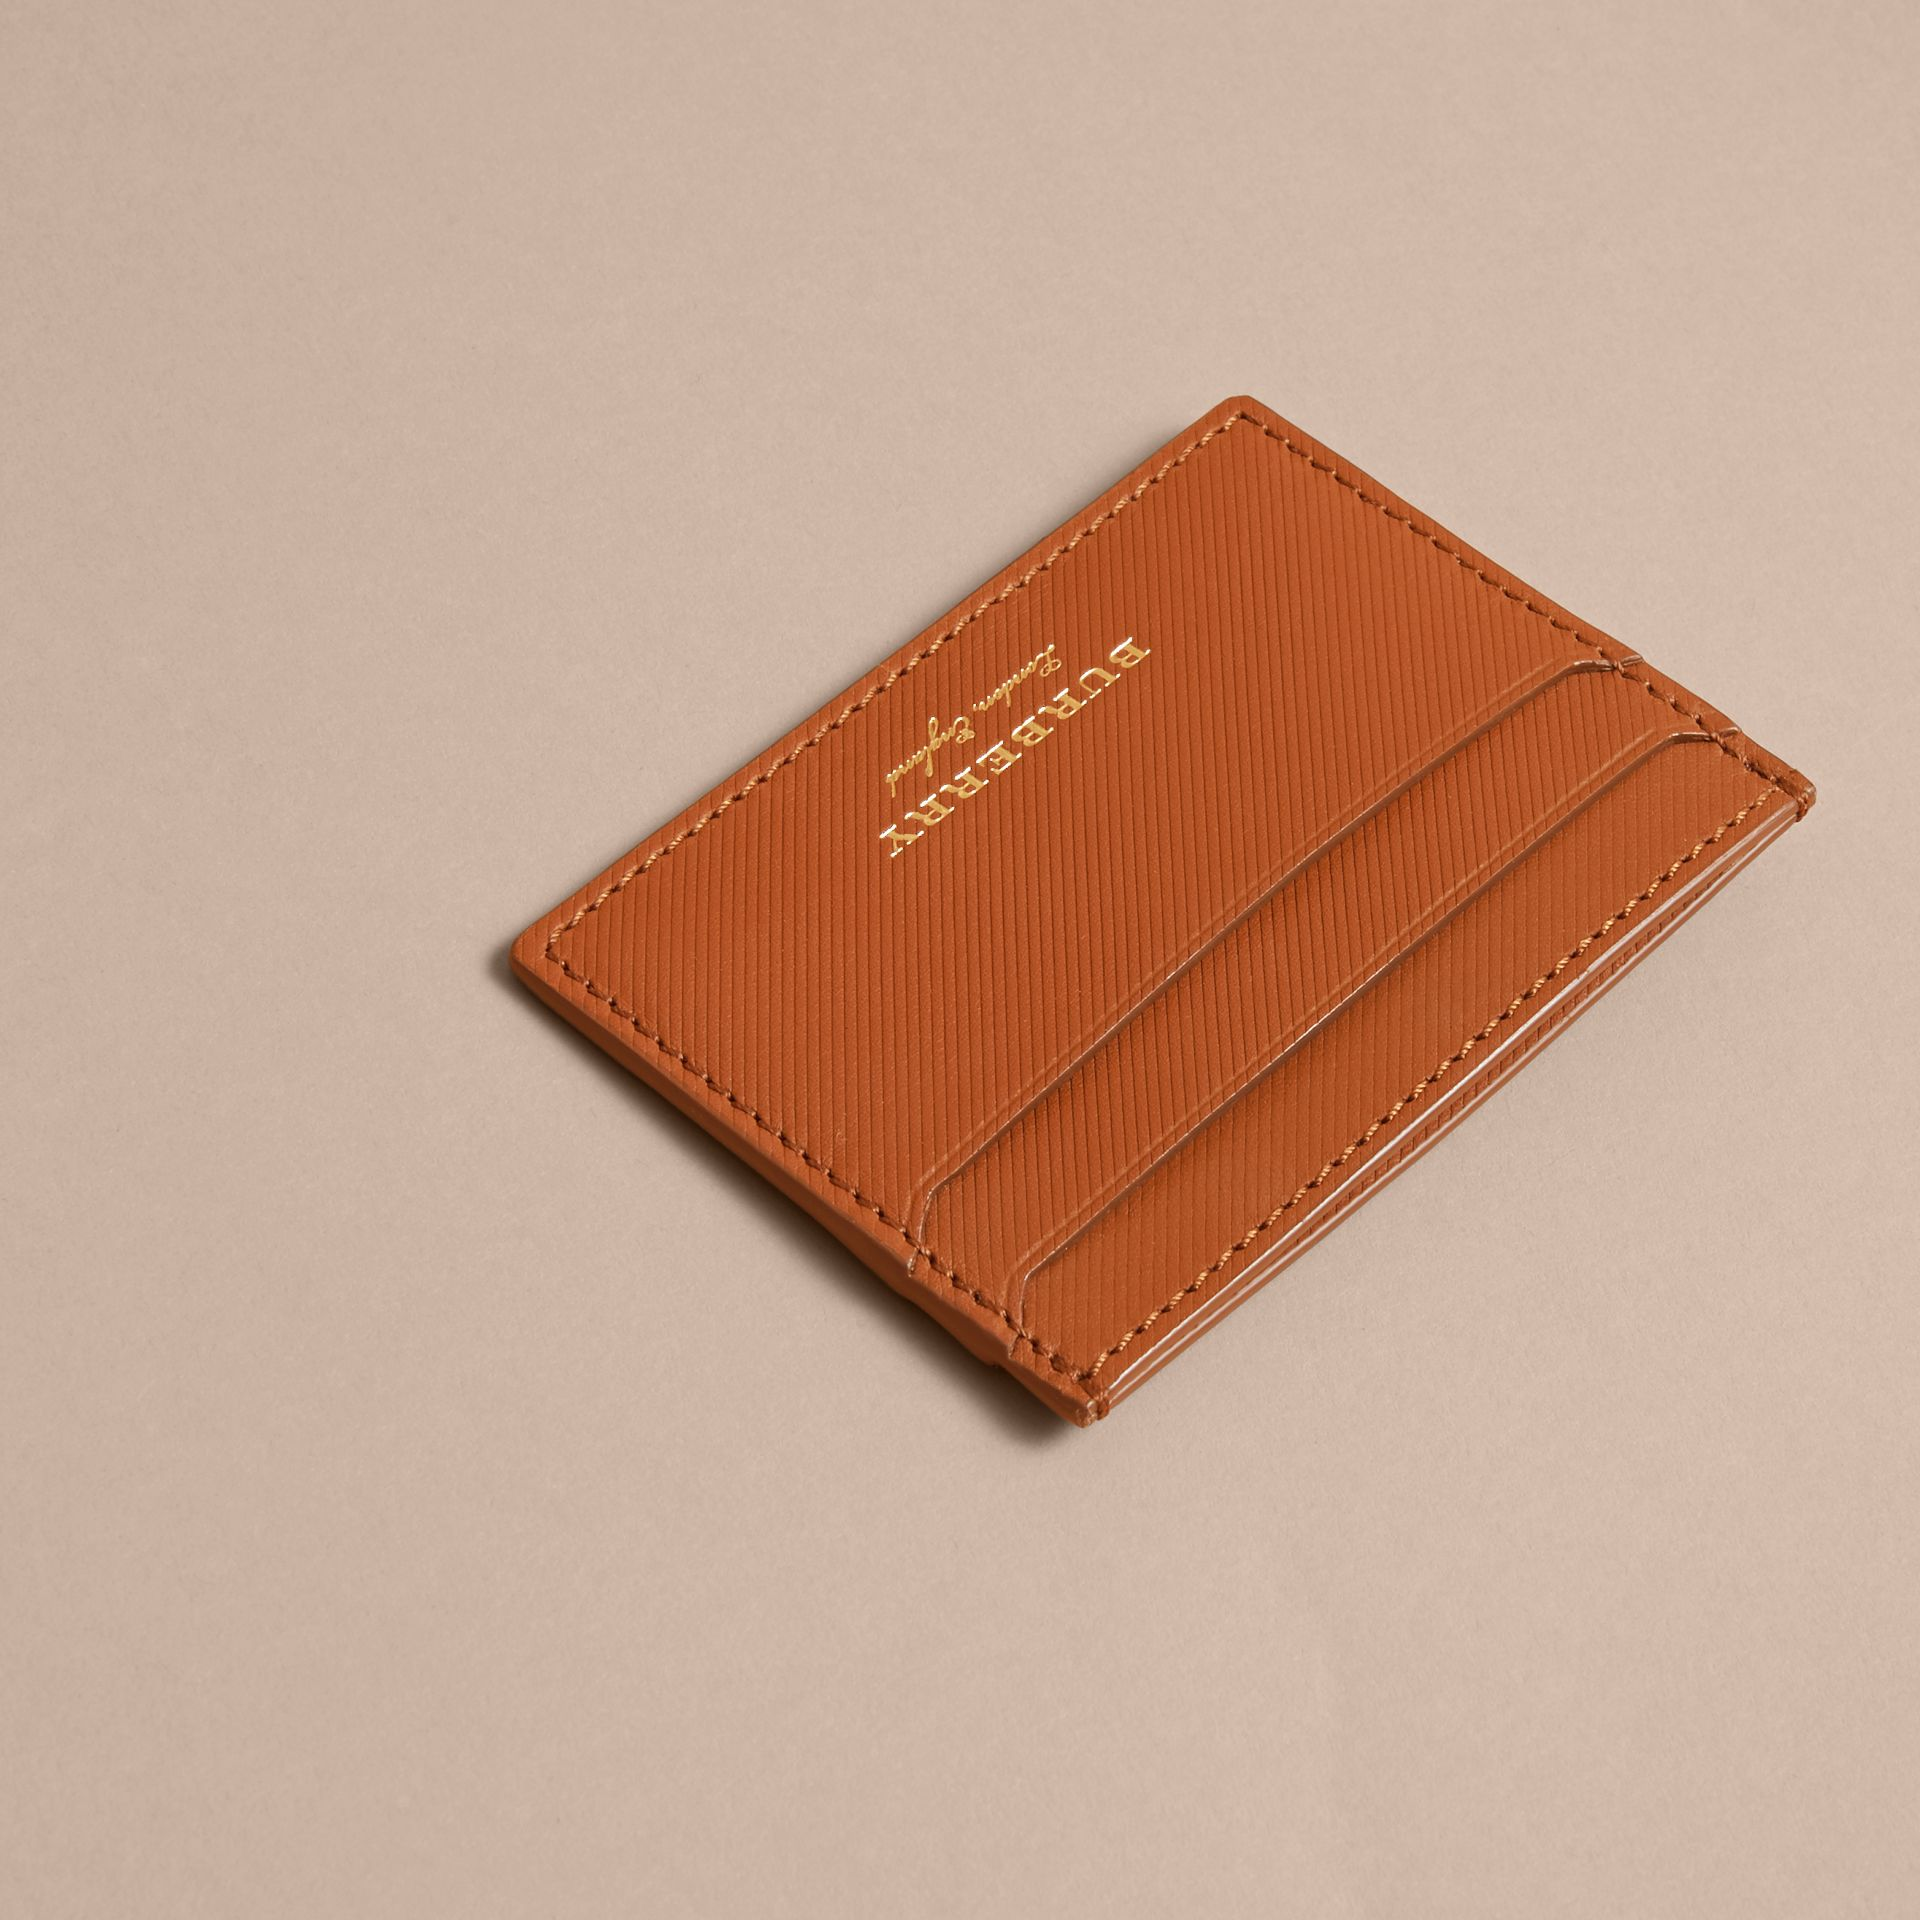 Trench Leather Card Case in Tan - Men | Burberry - gallery image 3